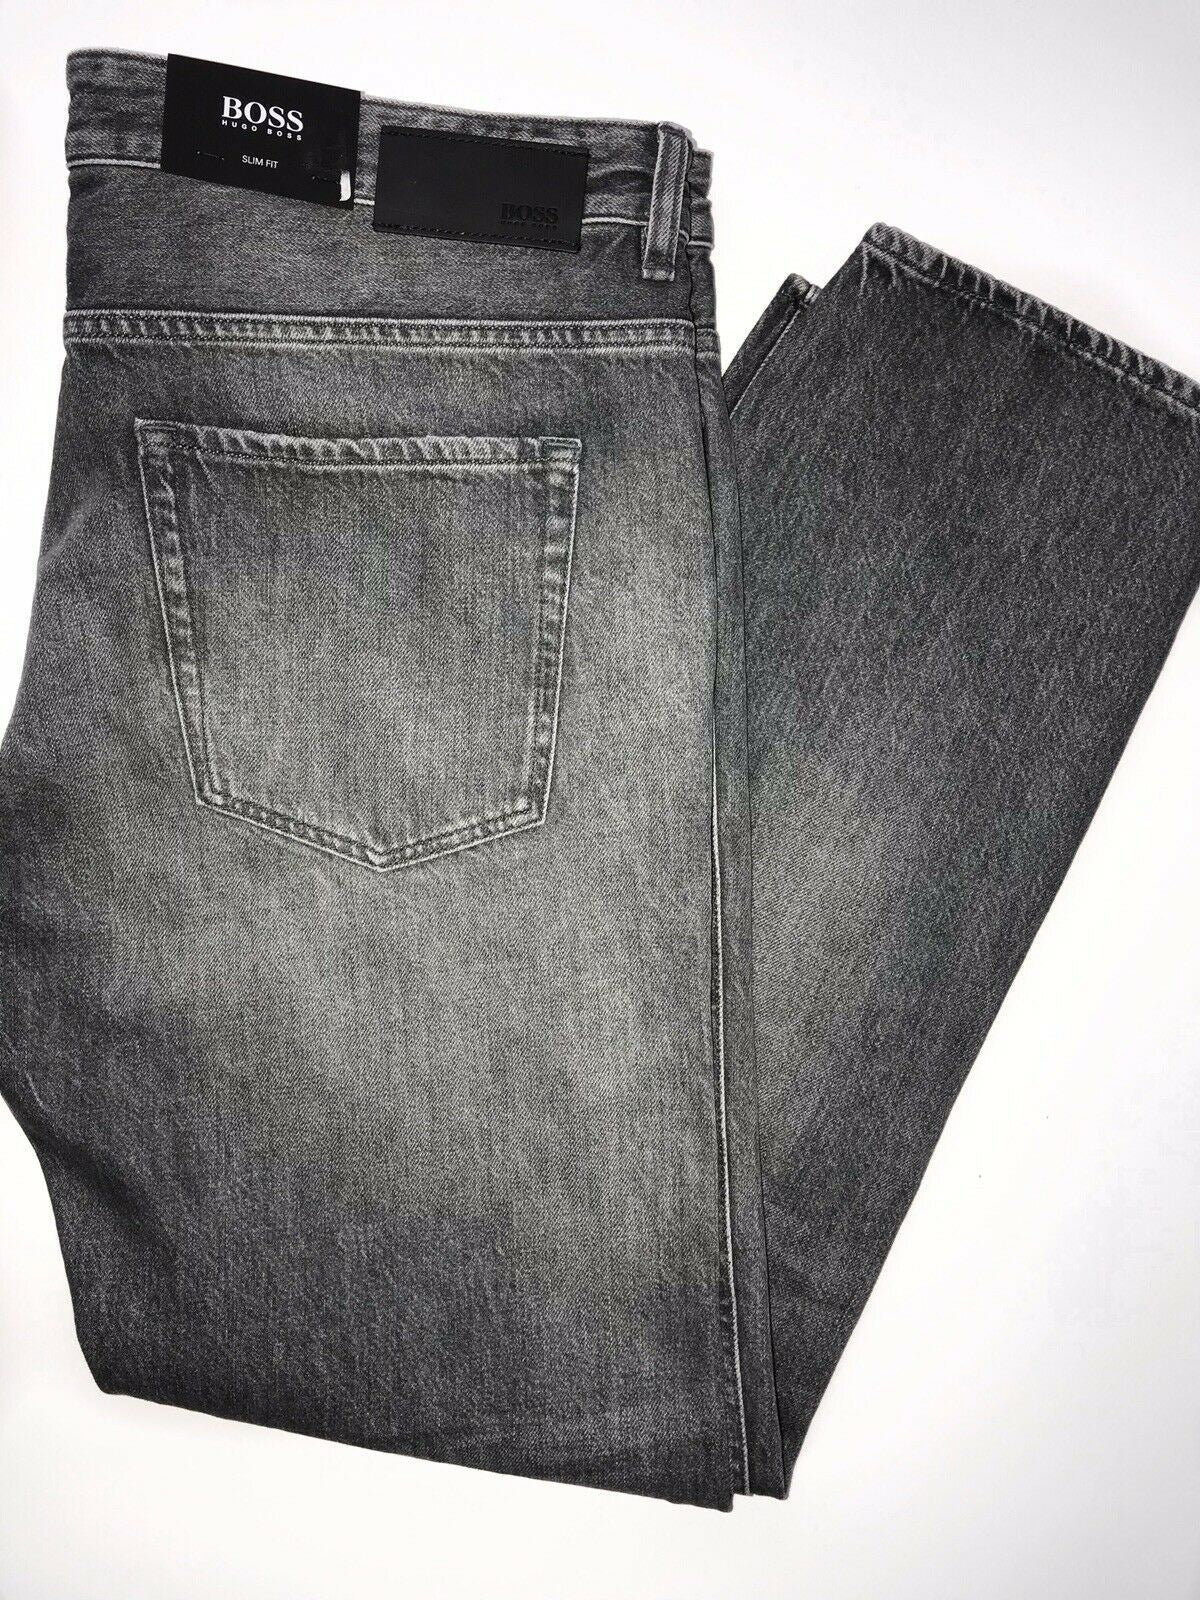 NWT $178 Hugo Boss Men's Delaware Slim Fit Cotton Grey Jeans Pants Size 38/32